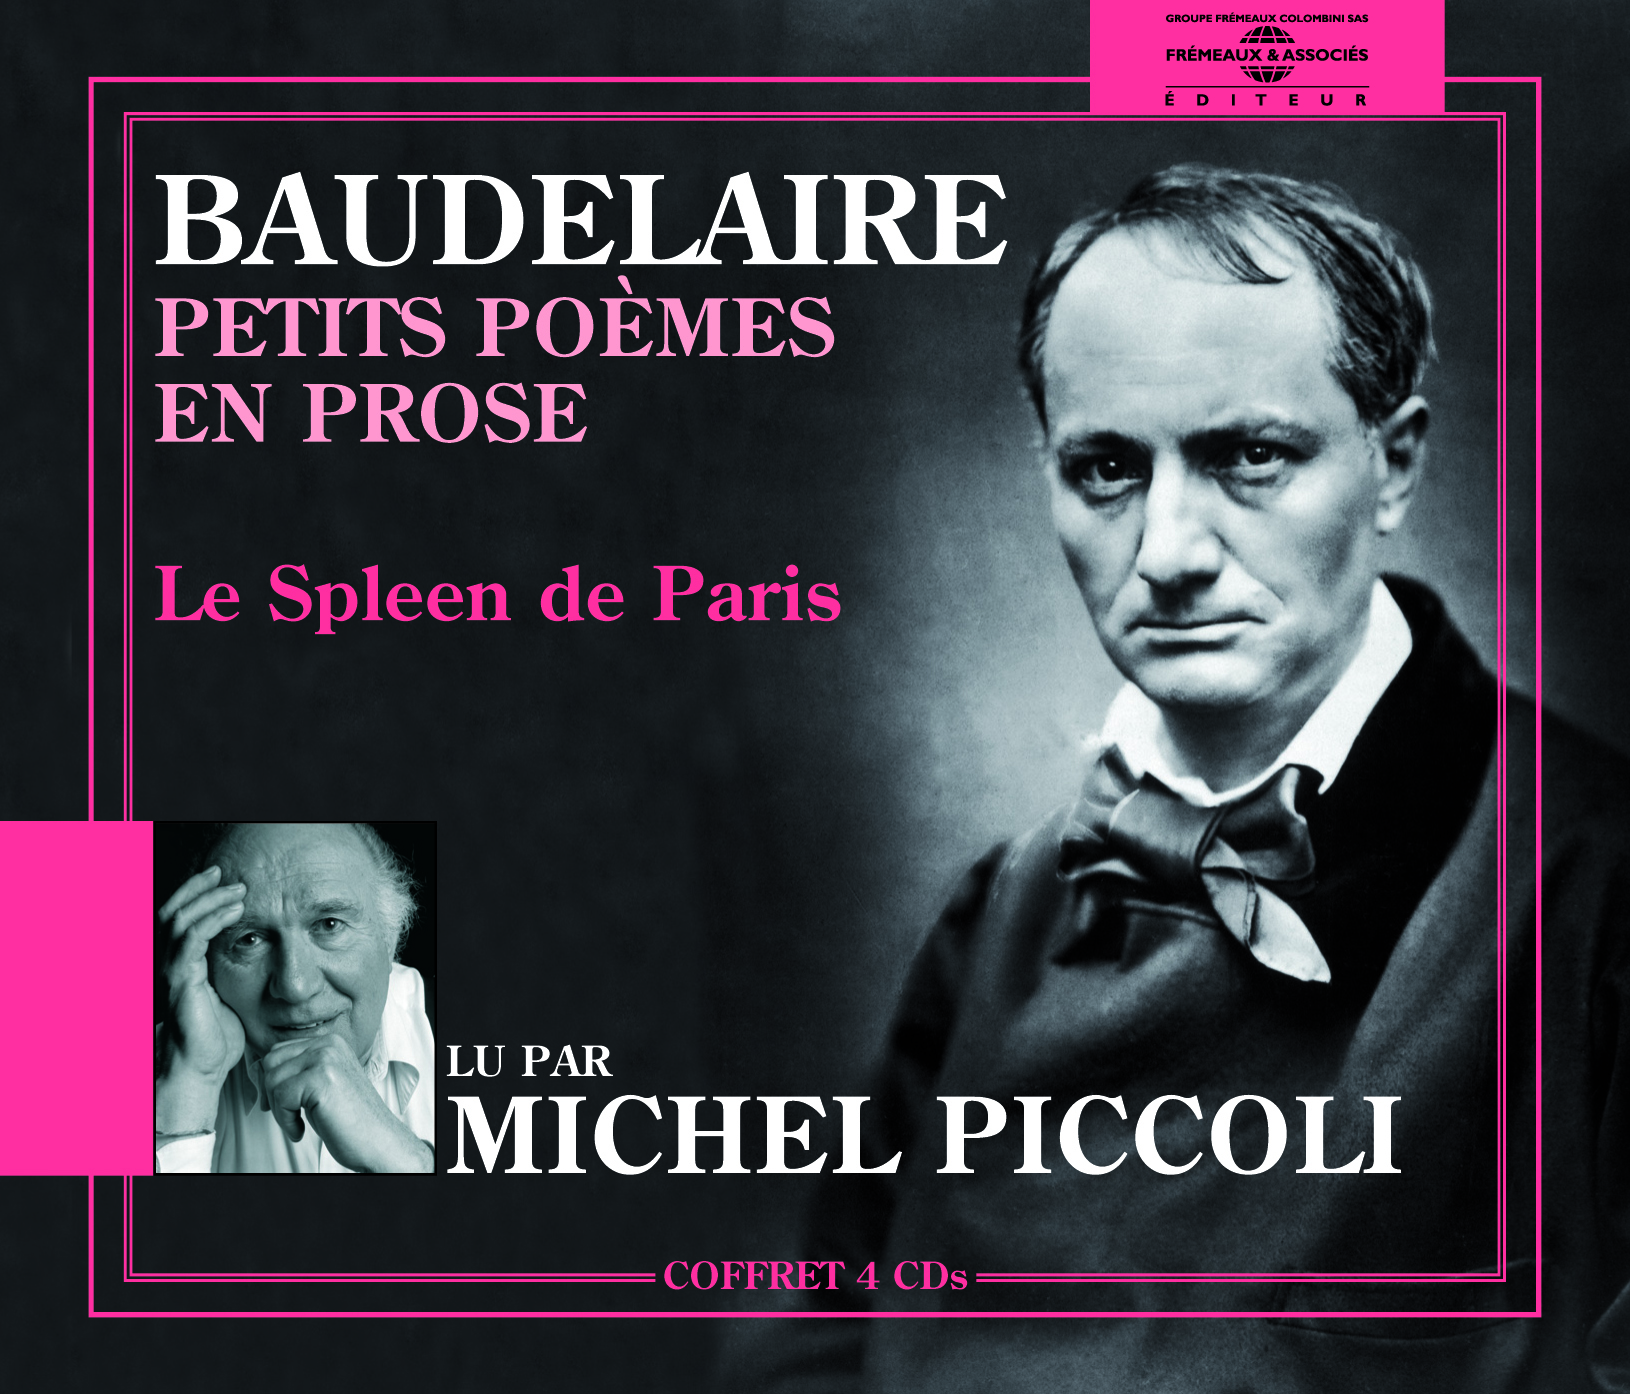 PETITS POEMES EN PROSE - LE SPLEEN DE PARIS LUS PAR MICHEL PICCOLI SUR 4 CD AUDIO